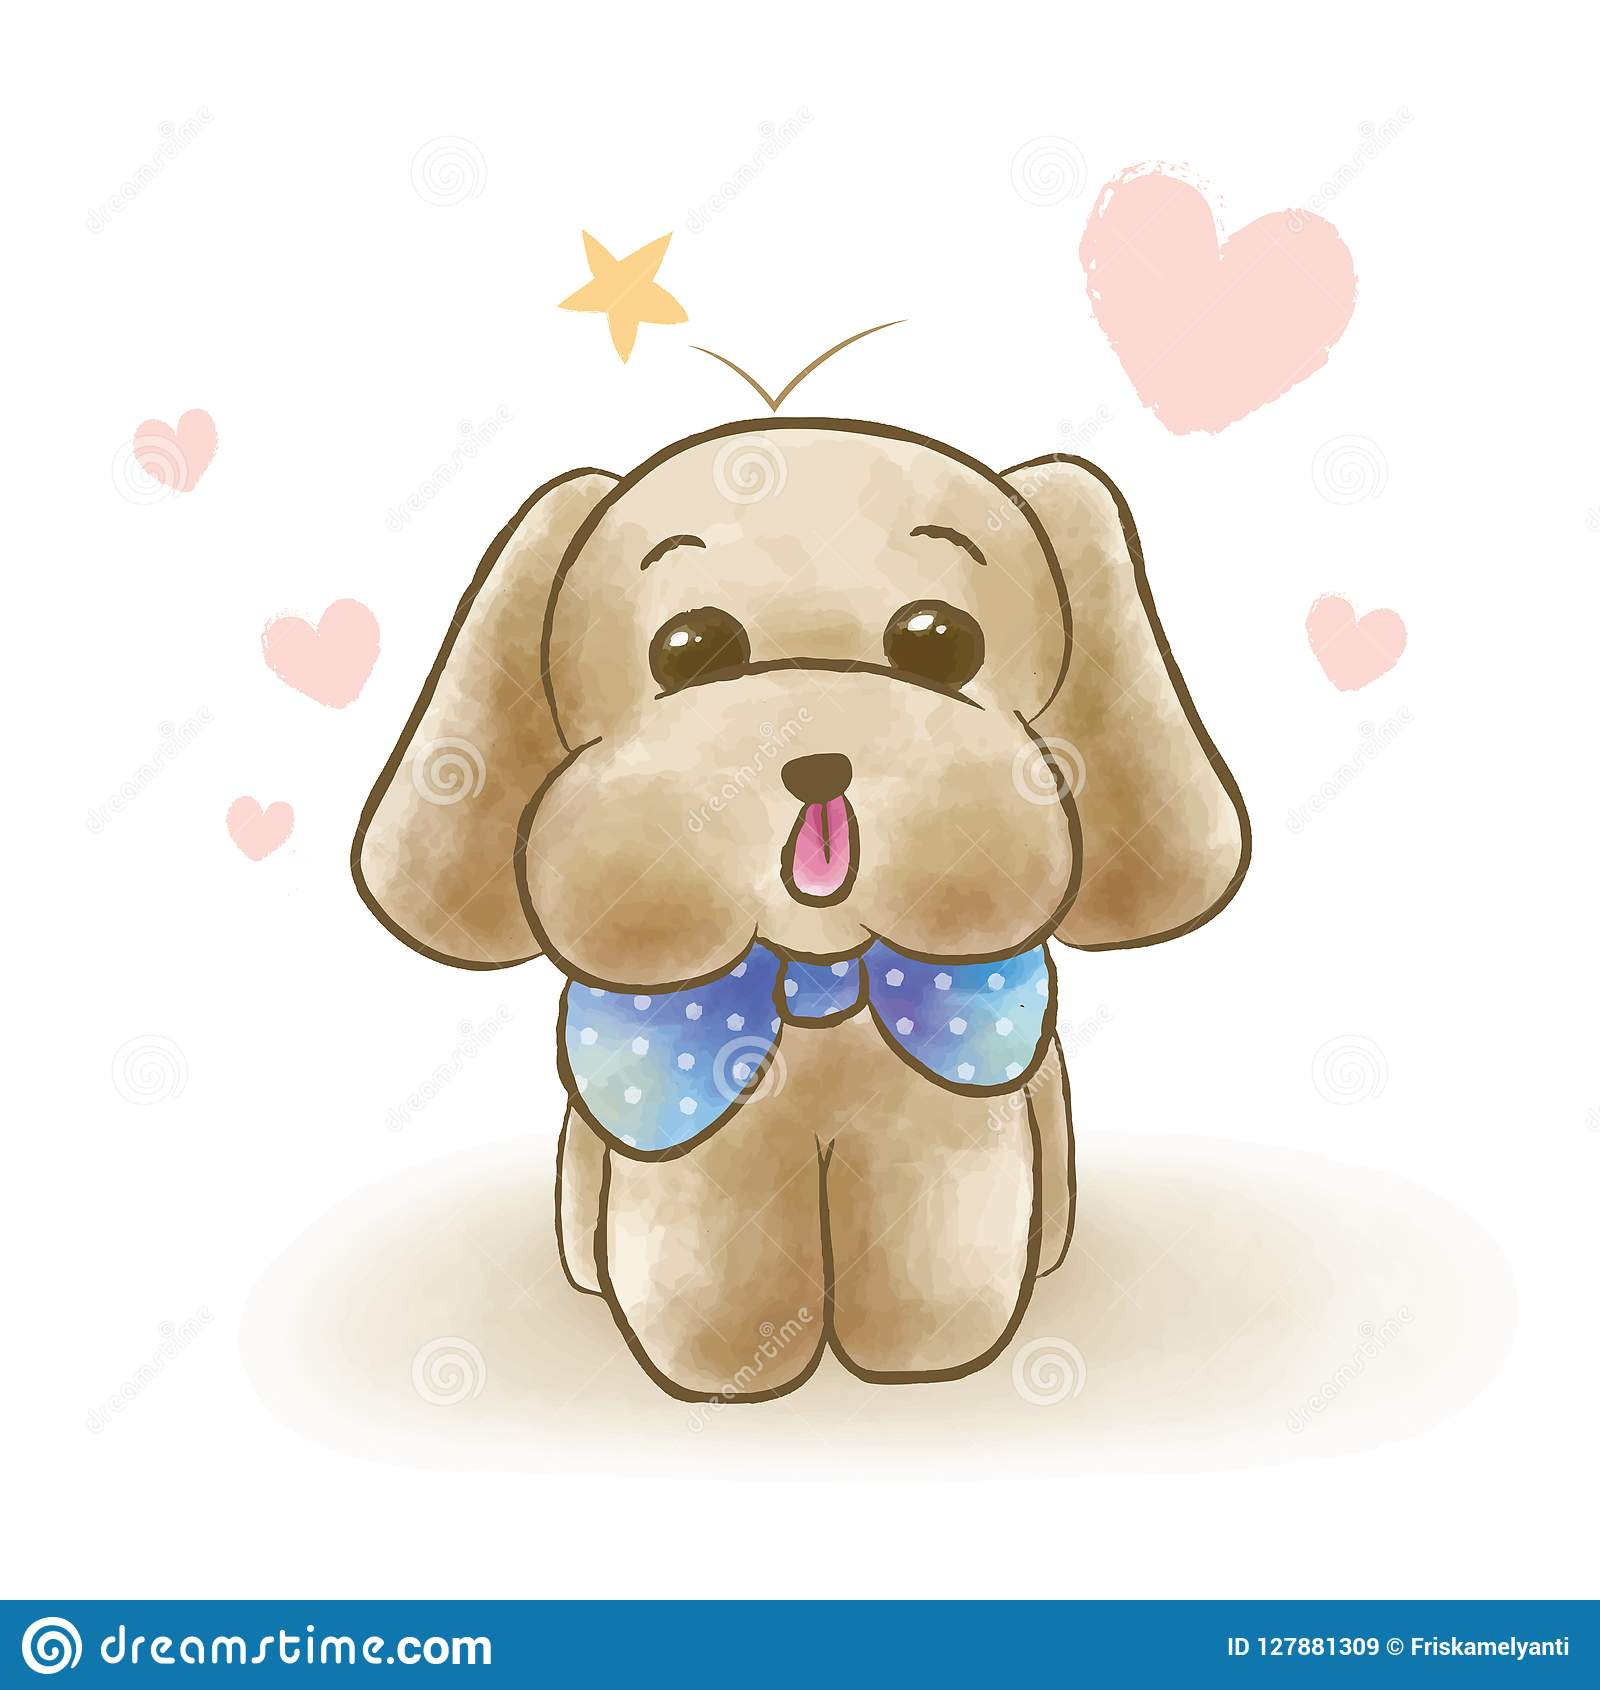 Cute Toy Poodle Puppy Dog Wearing Blue Ribbon Tie Stock Illustration Illustration Of Birthday Mascot 127881309